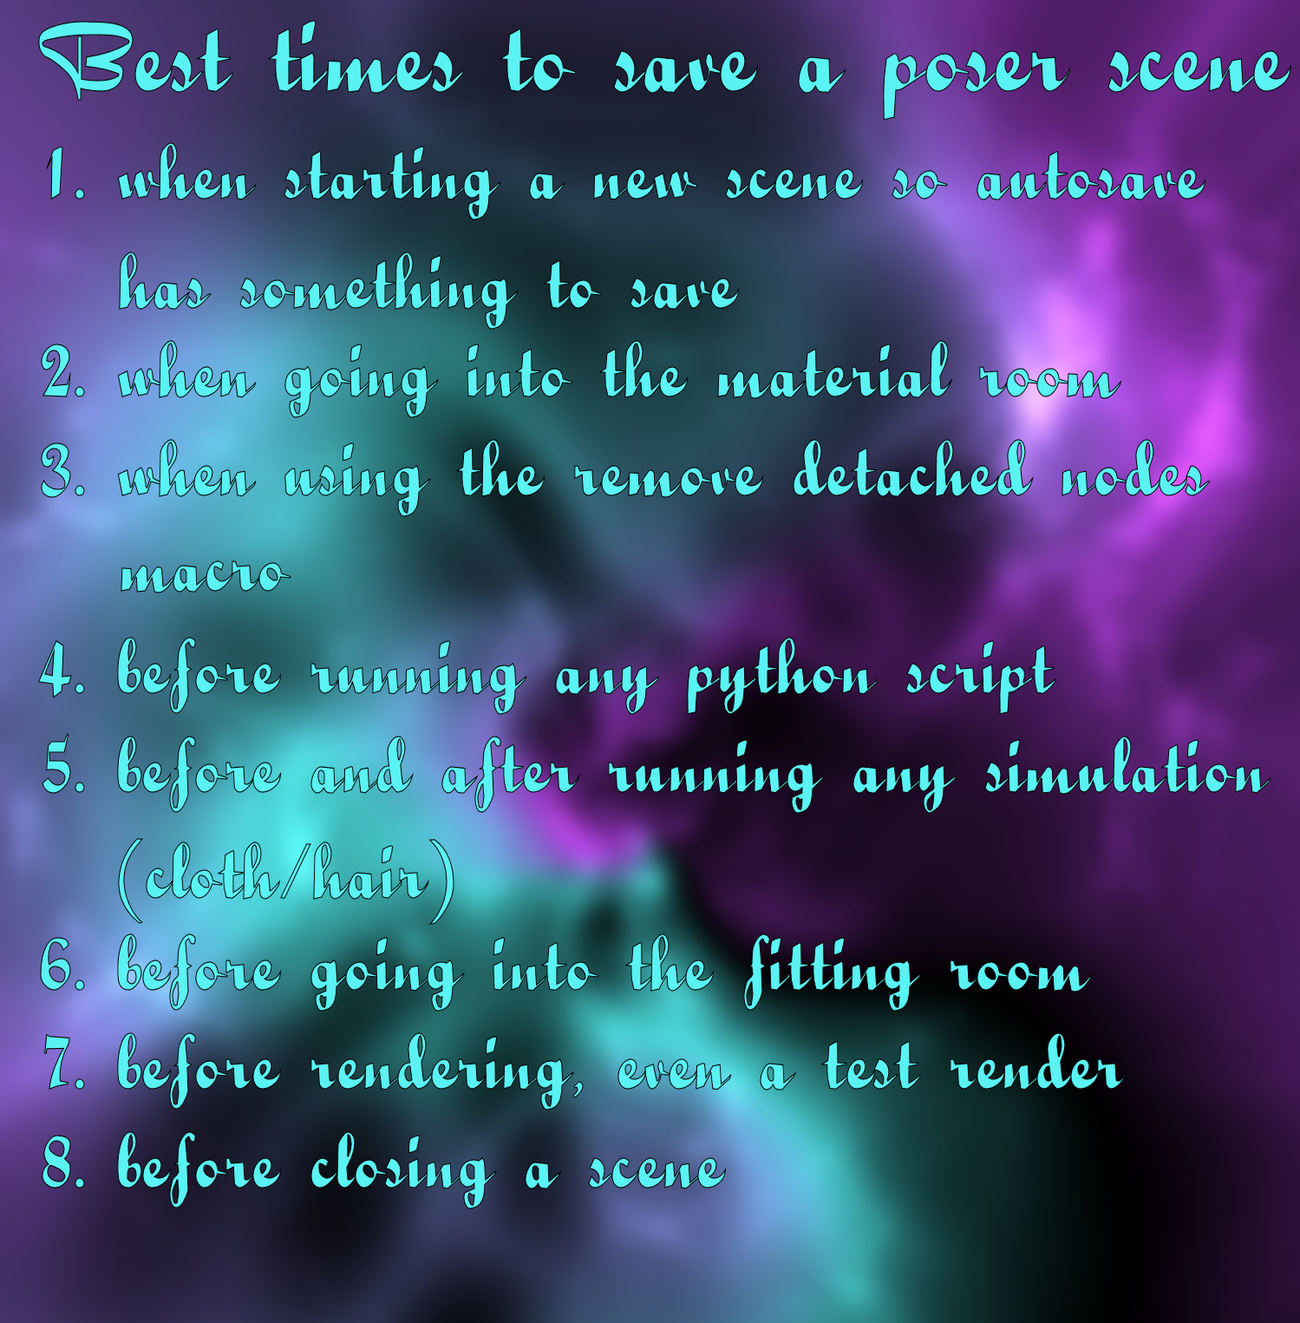 Best times to save a Poser scene